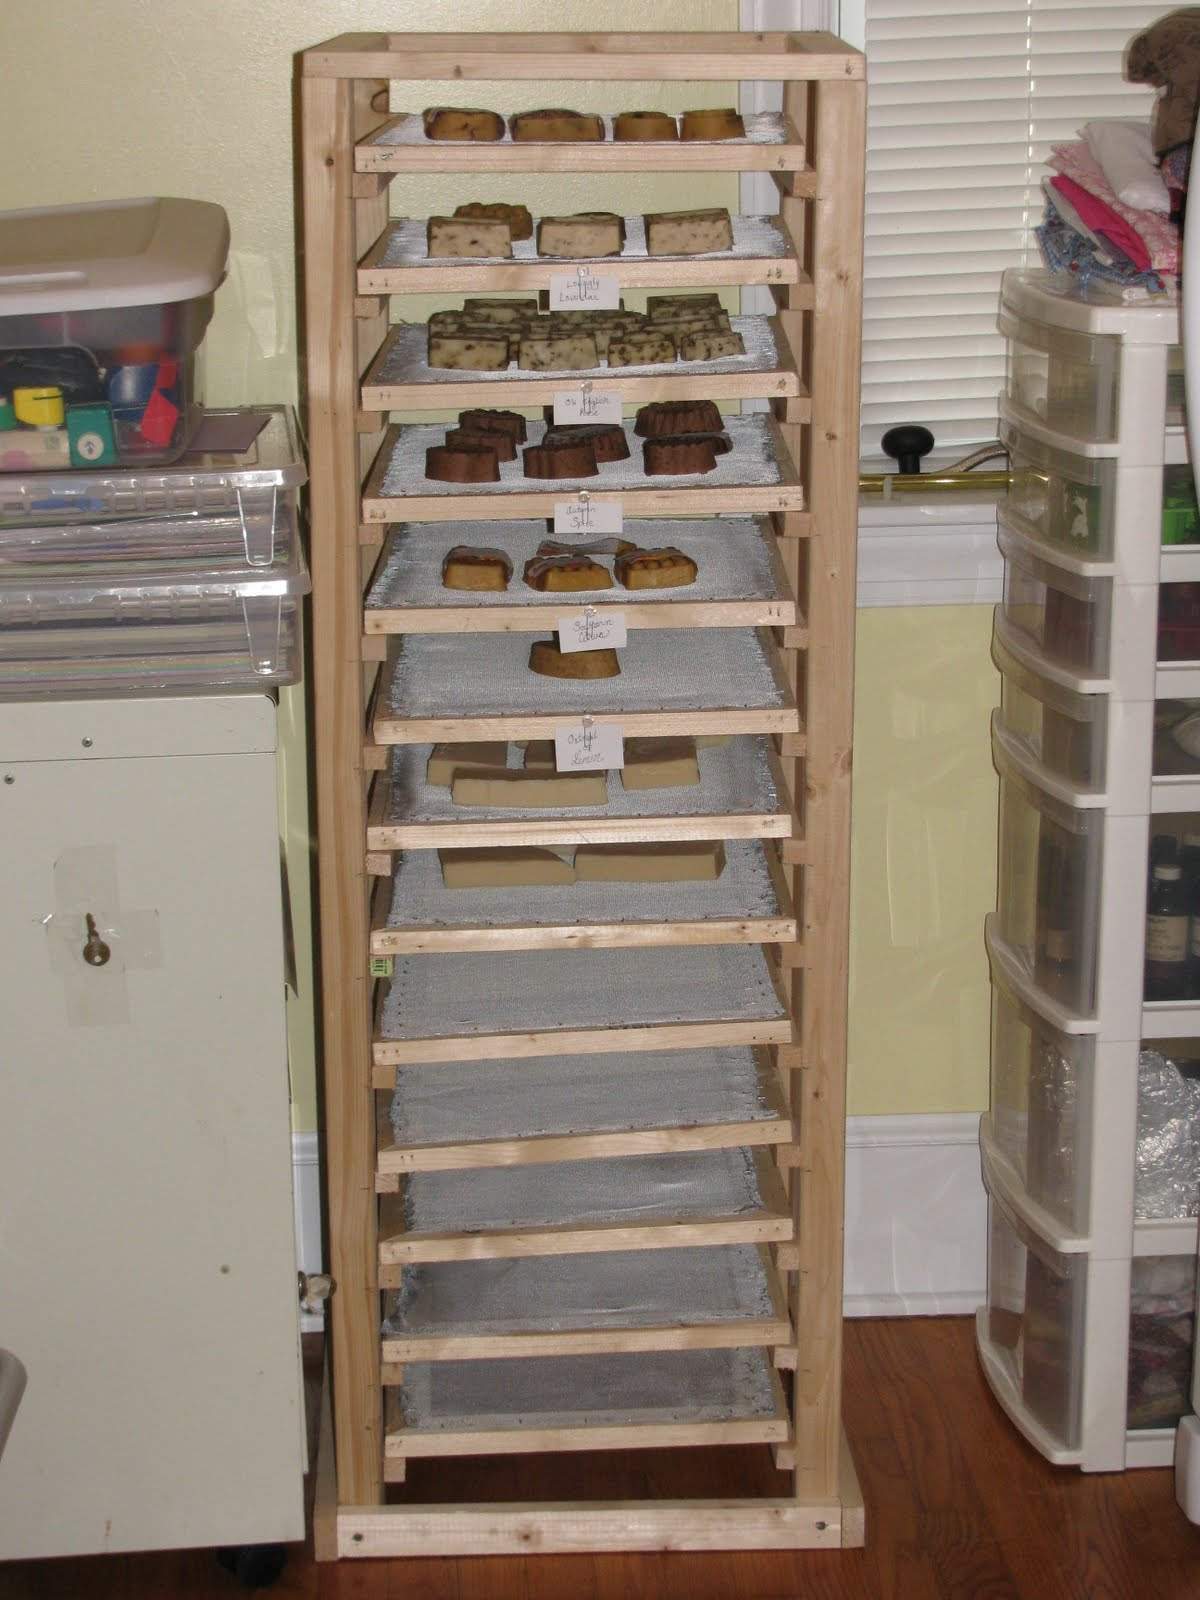 ... skills to practice this past week as he made me this soap curing rack